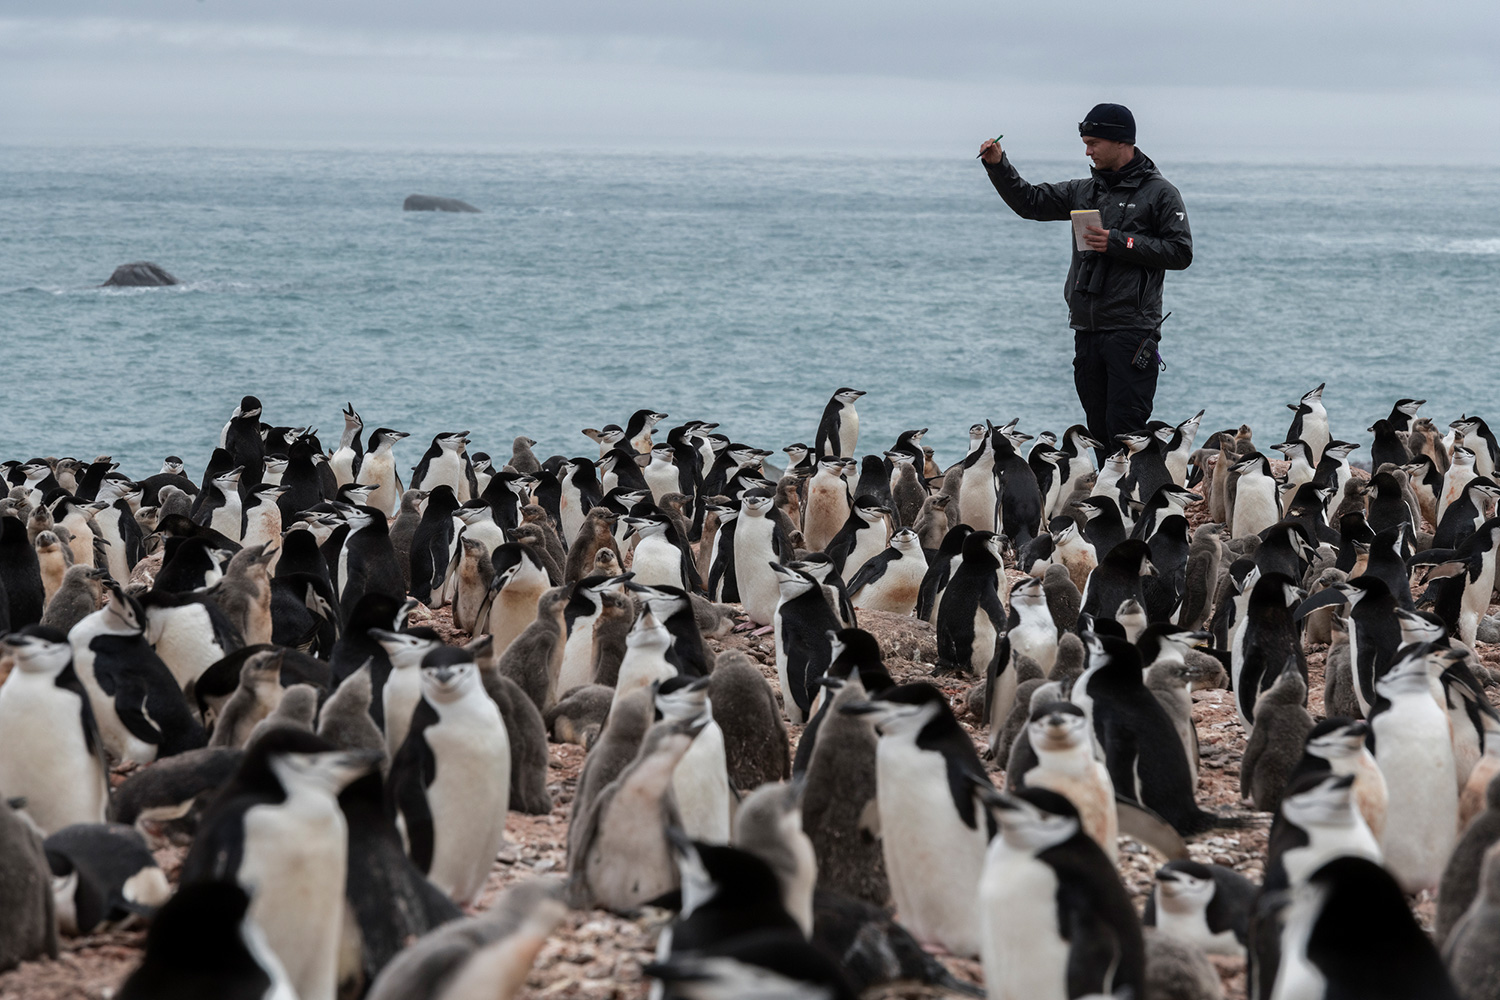 Noah Strycker, a graduate student at Stony Brook University in New York, studies Chinstrap Penguins on the Antarctic peninsula. Elephant Island is home to one of the world's largest Chinstrap Penguin populations, yet it has only been ornithologically surveyed once – nearly 50 years ago, in 1971. To understand how these penguins are faring today, an expedition is organized to census the Chinstrap Penguins on Elephant Island in 2020 by penguin researchers from Stony Brook University and Northeastern University together with Greenpeace to study the impact of climate change on fragile chinstrap penguin colonies in Antarctica. An observer must count every single penguin nest, one by one, and repeat the count three times within a 5% margin to ensure accuracy. It's often easiest to find a high point with a good view, and use landmarks (like rocks and other terrain features) to visually divide up large chunks of birds. (This picture was taken in 2020 during the Antarctic leg of the Pole to Pole expedition under the Dutch permit number RWS-2019/40813)